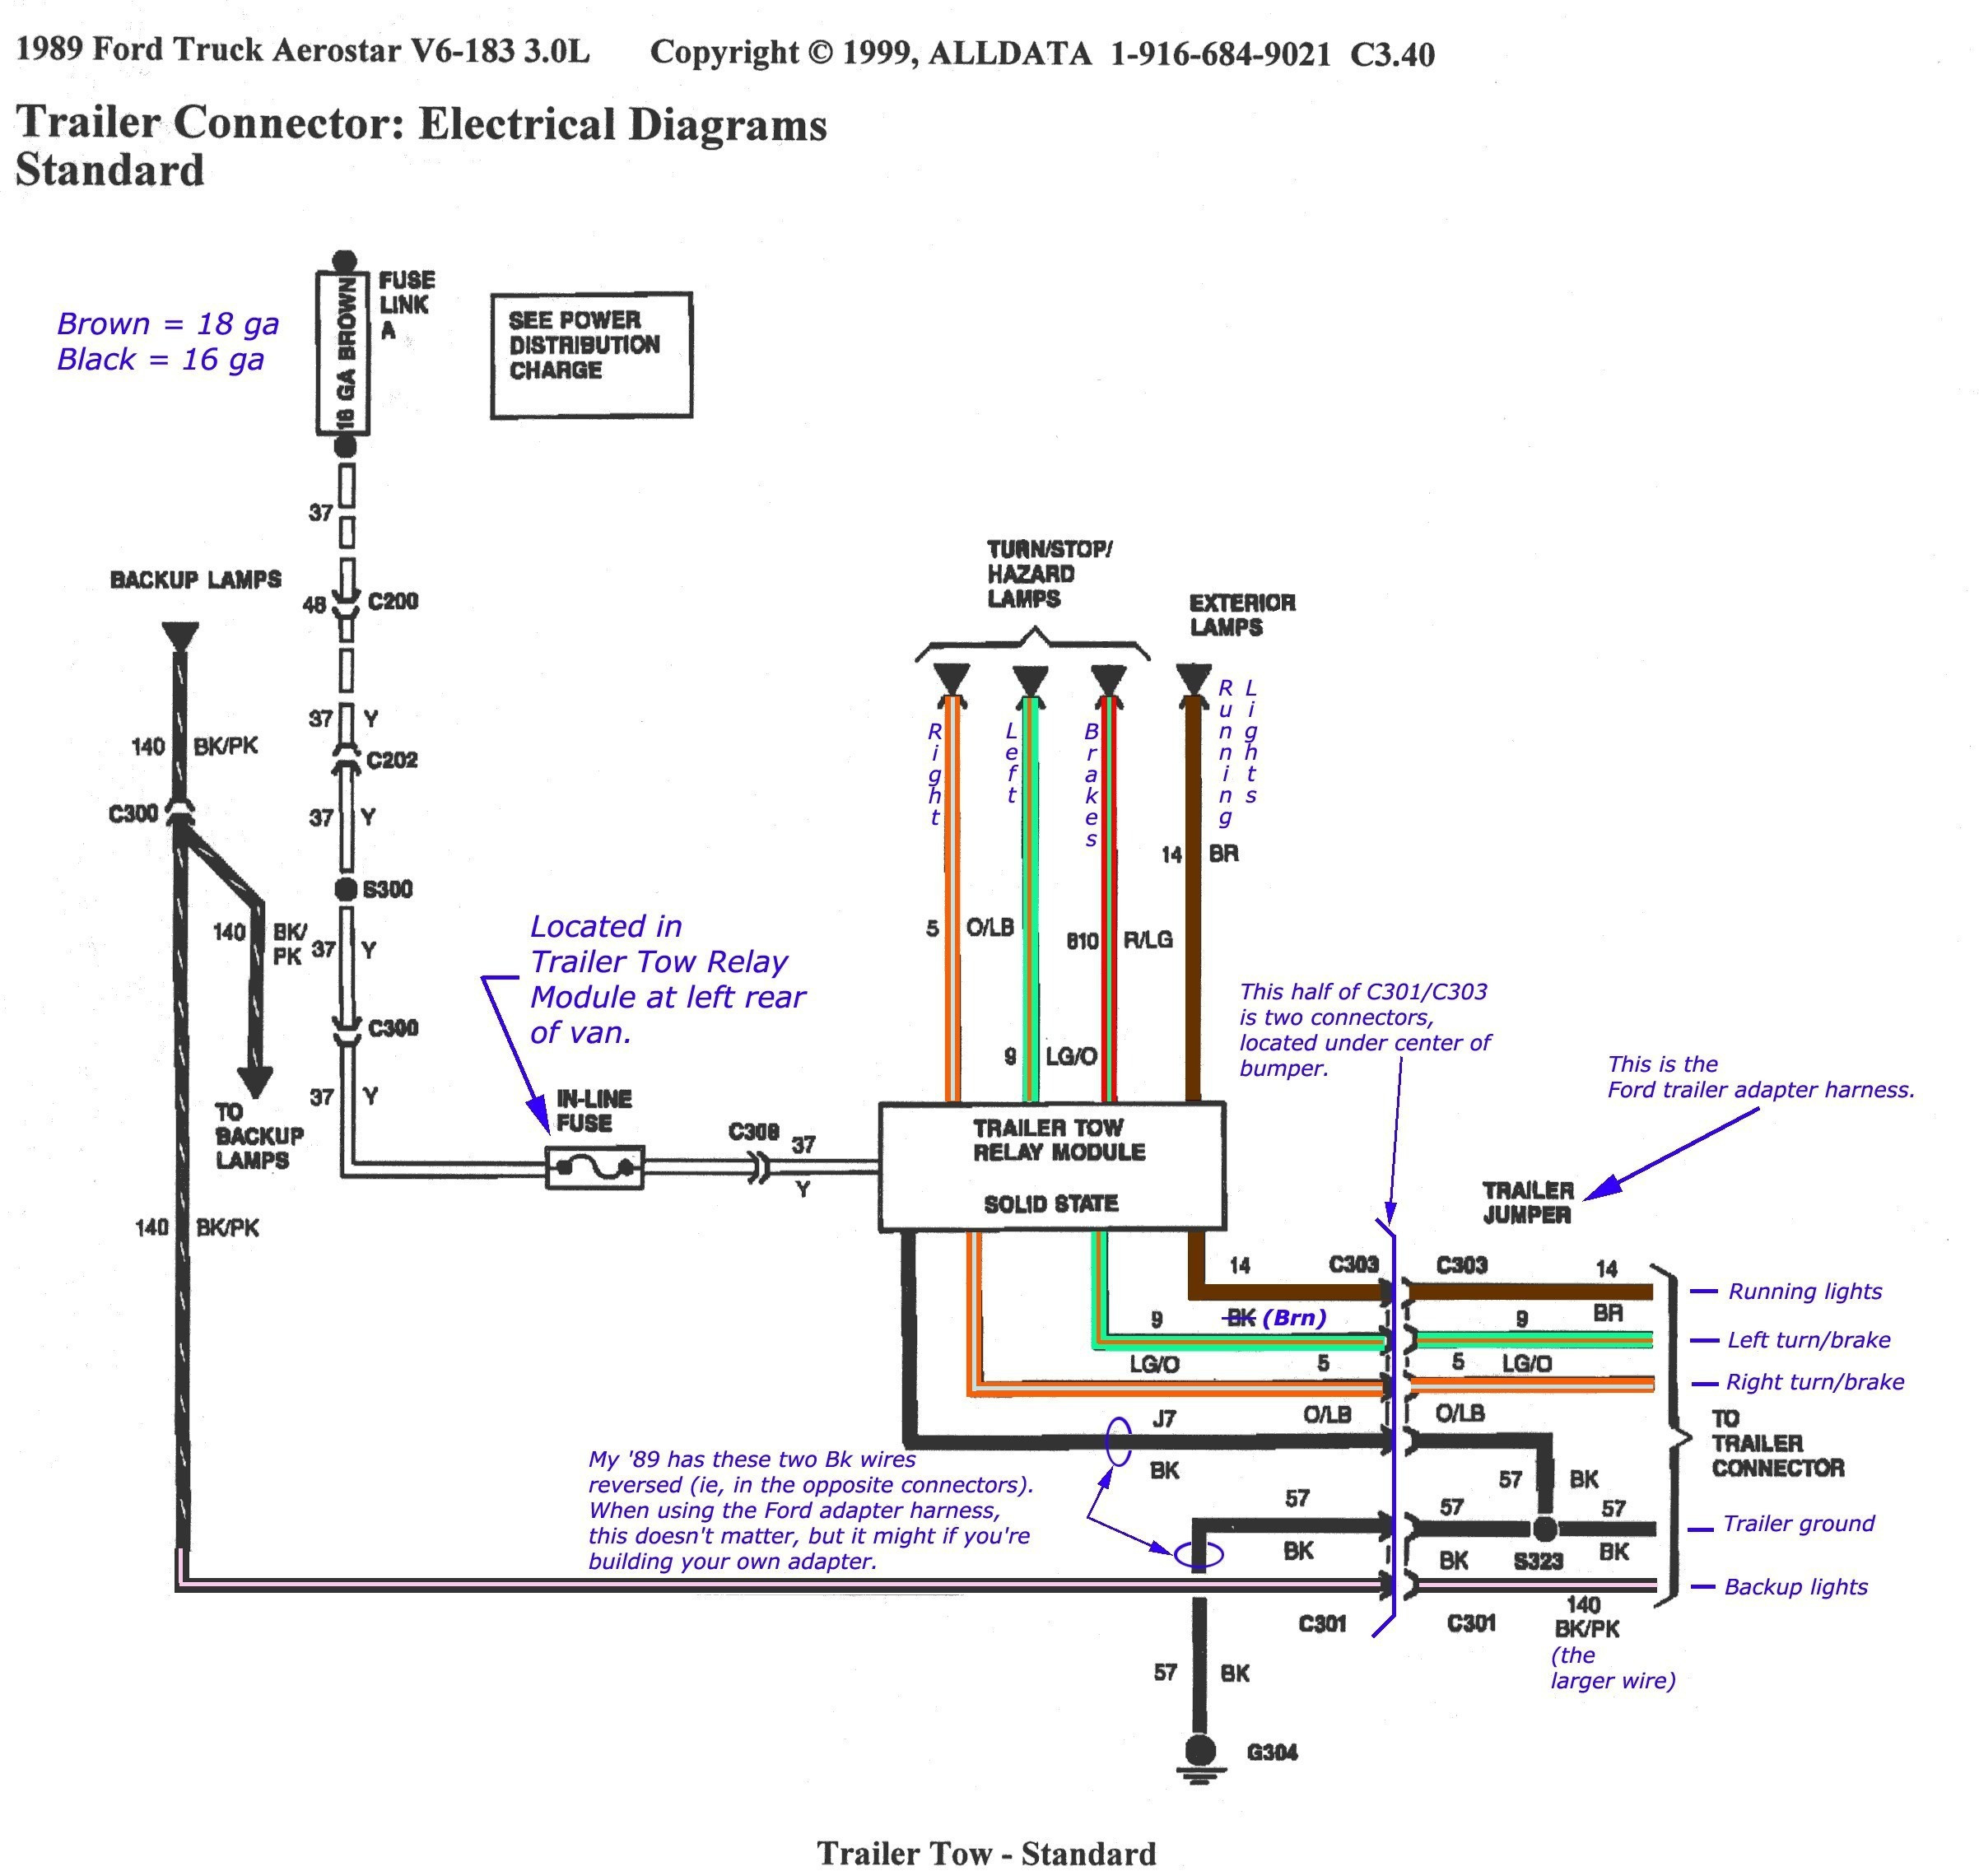 utility trailer wiring diagram Collection-Wiring Diagrams for Utility Trailer Best Utility Trailer Wiring Diagram Best Best Wiring Diagram Od Rv 6-f